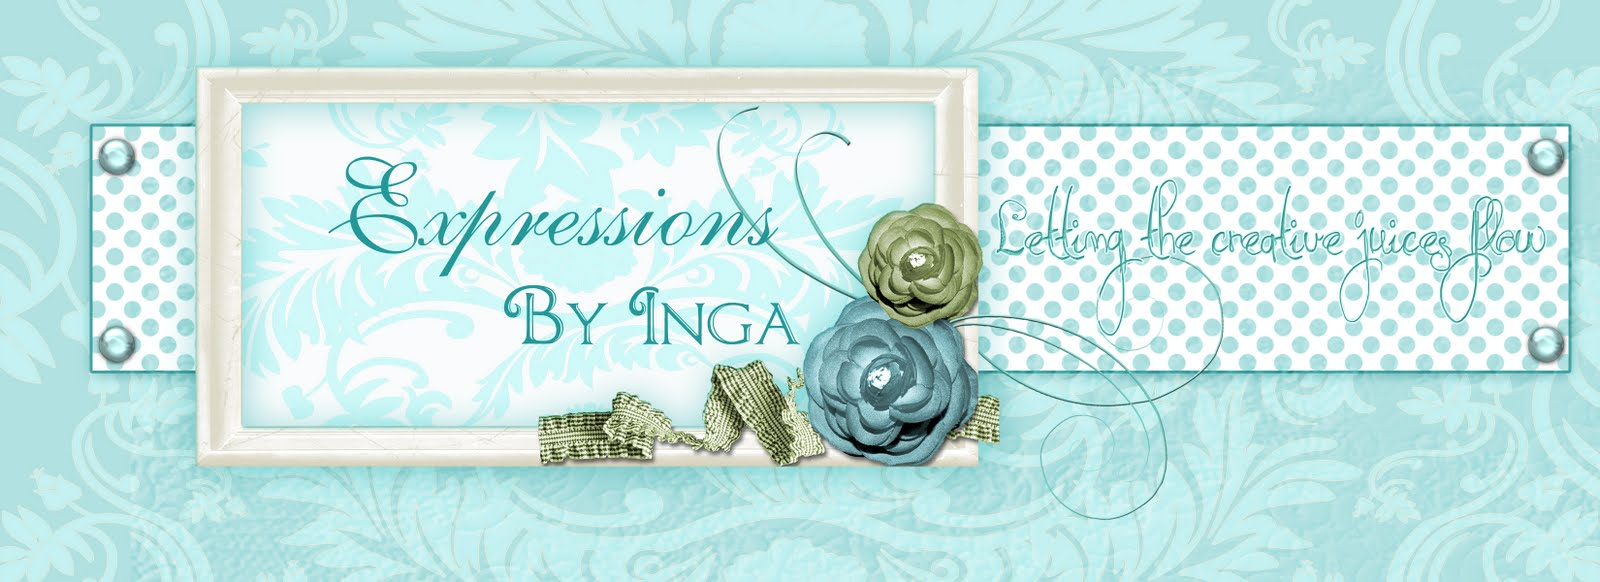 Expressions By Inga